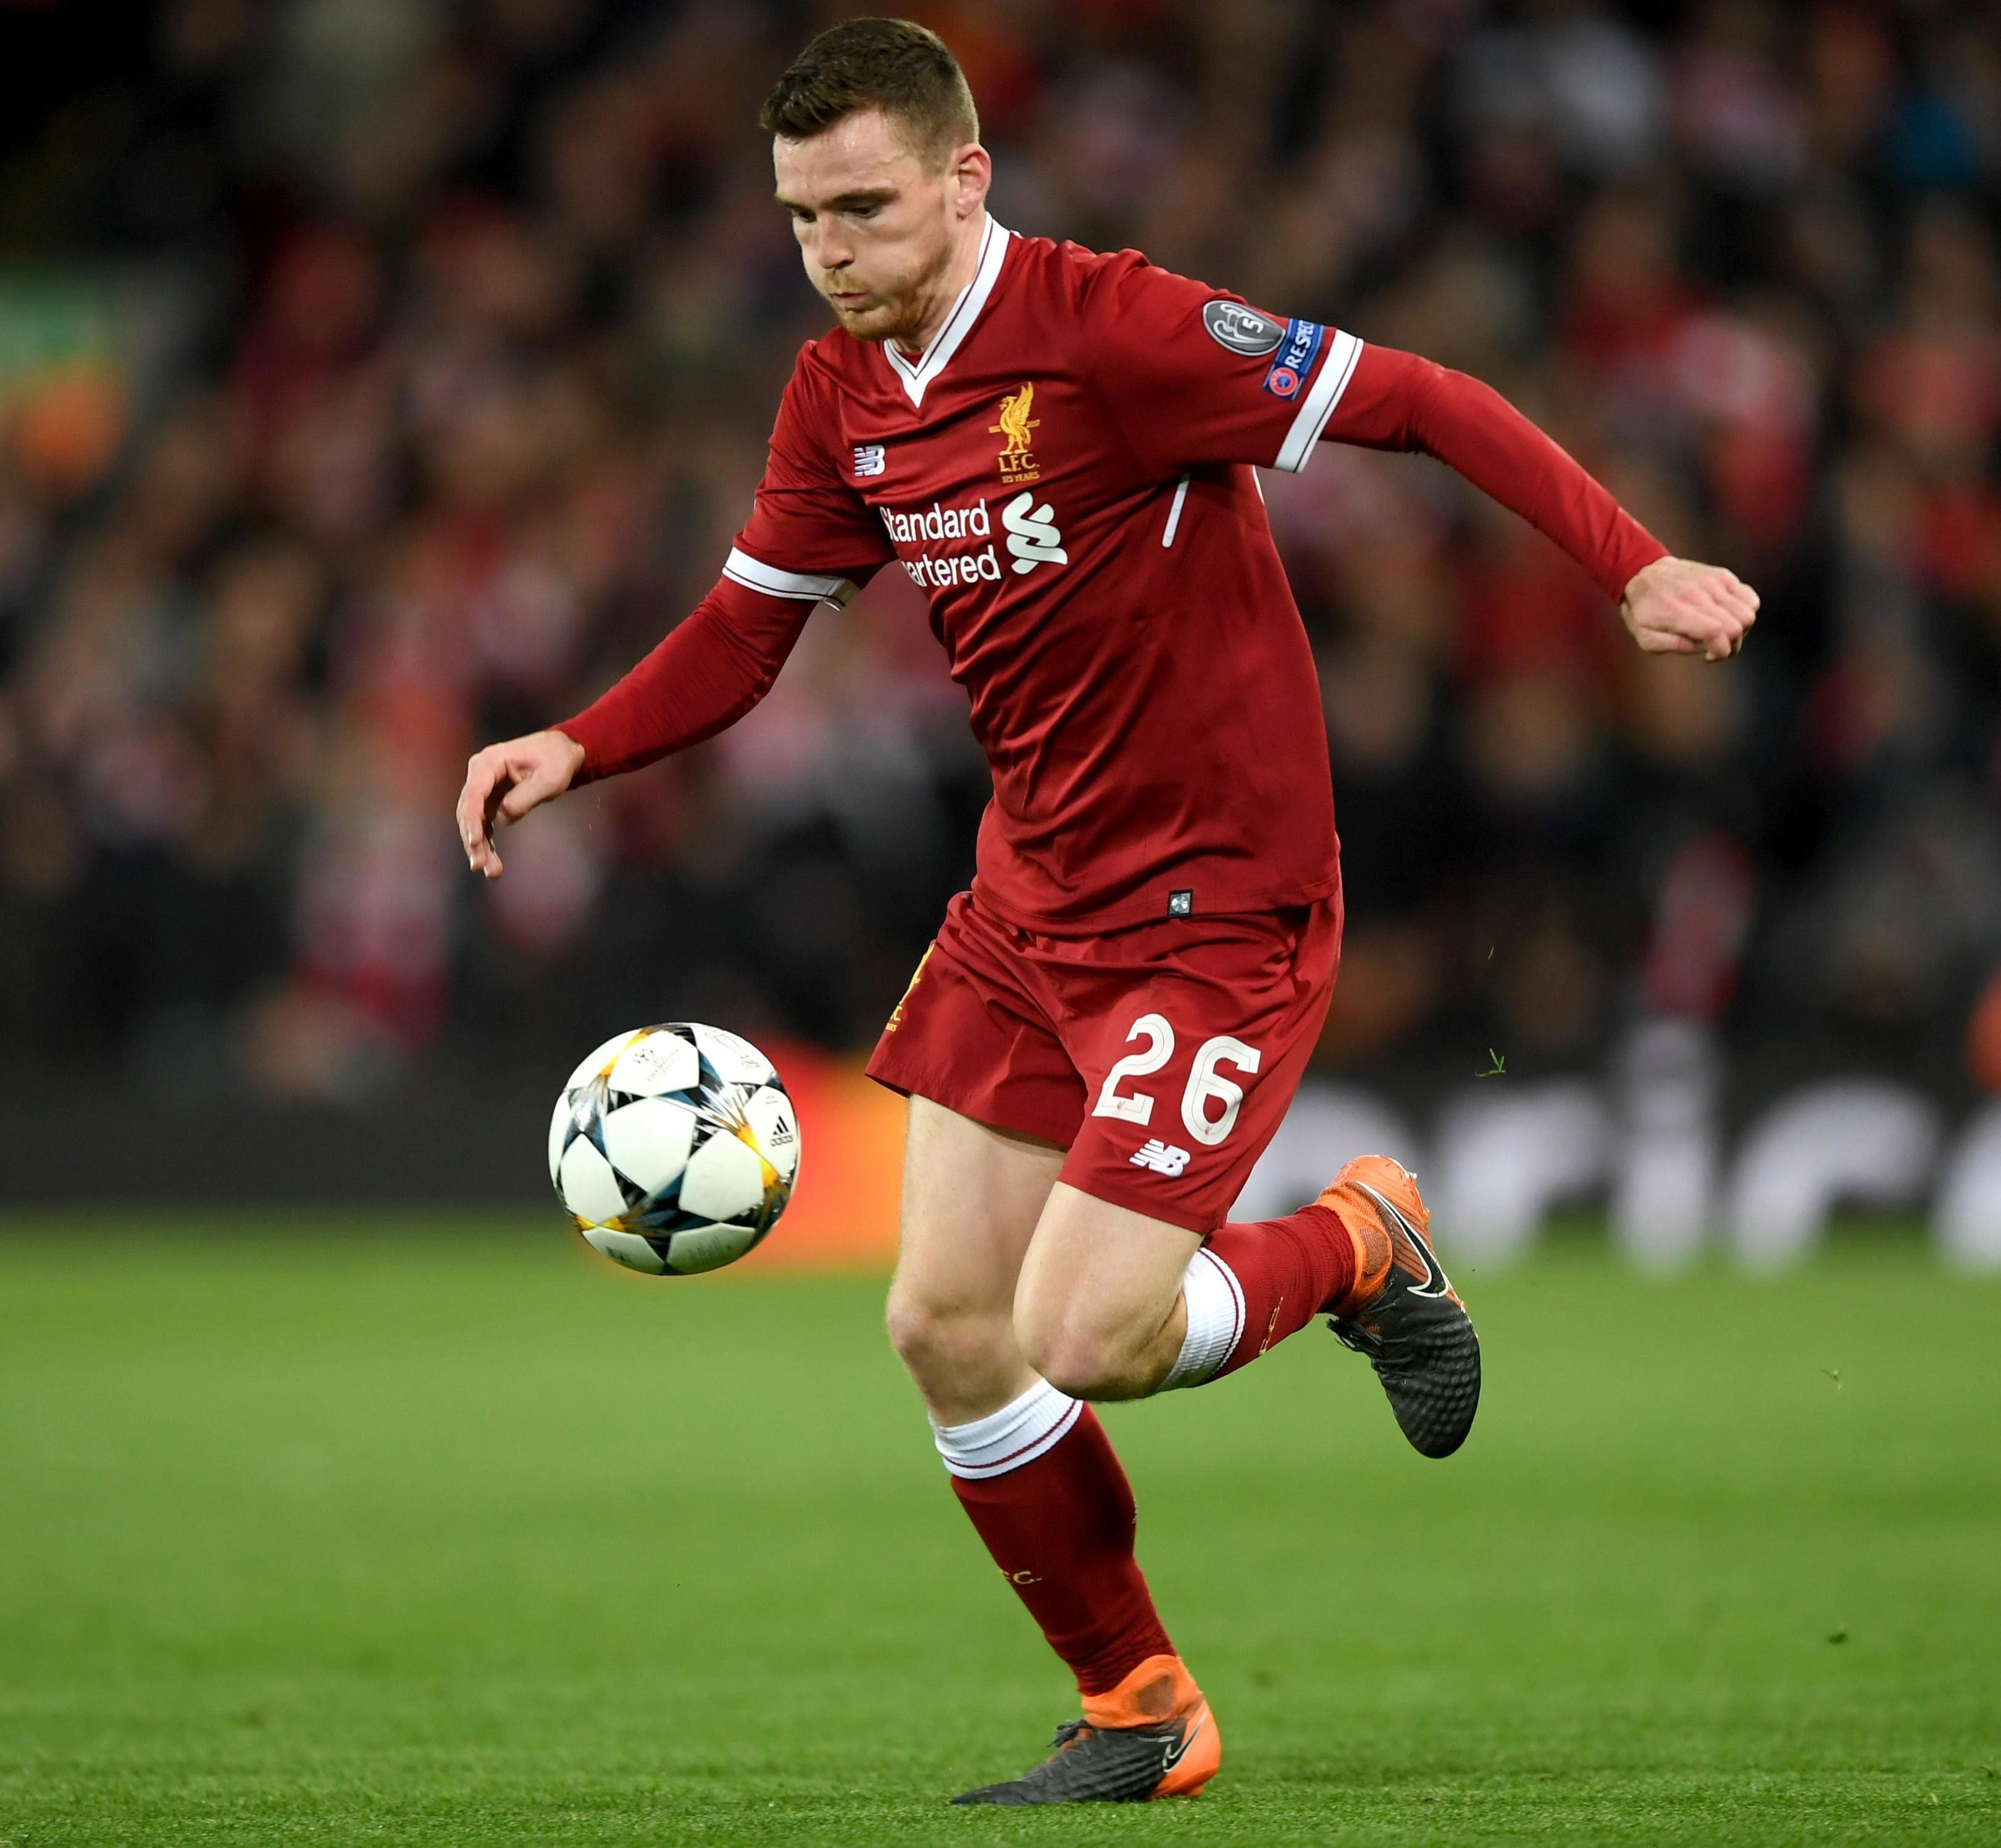 Robertson ran home from Rome. Pass it on